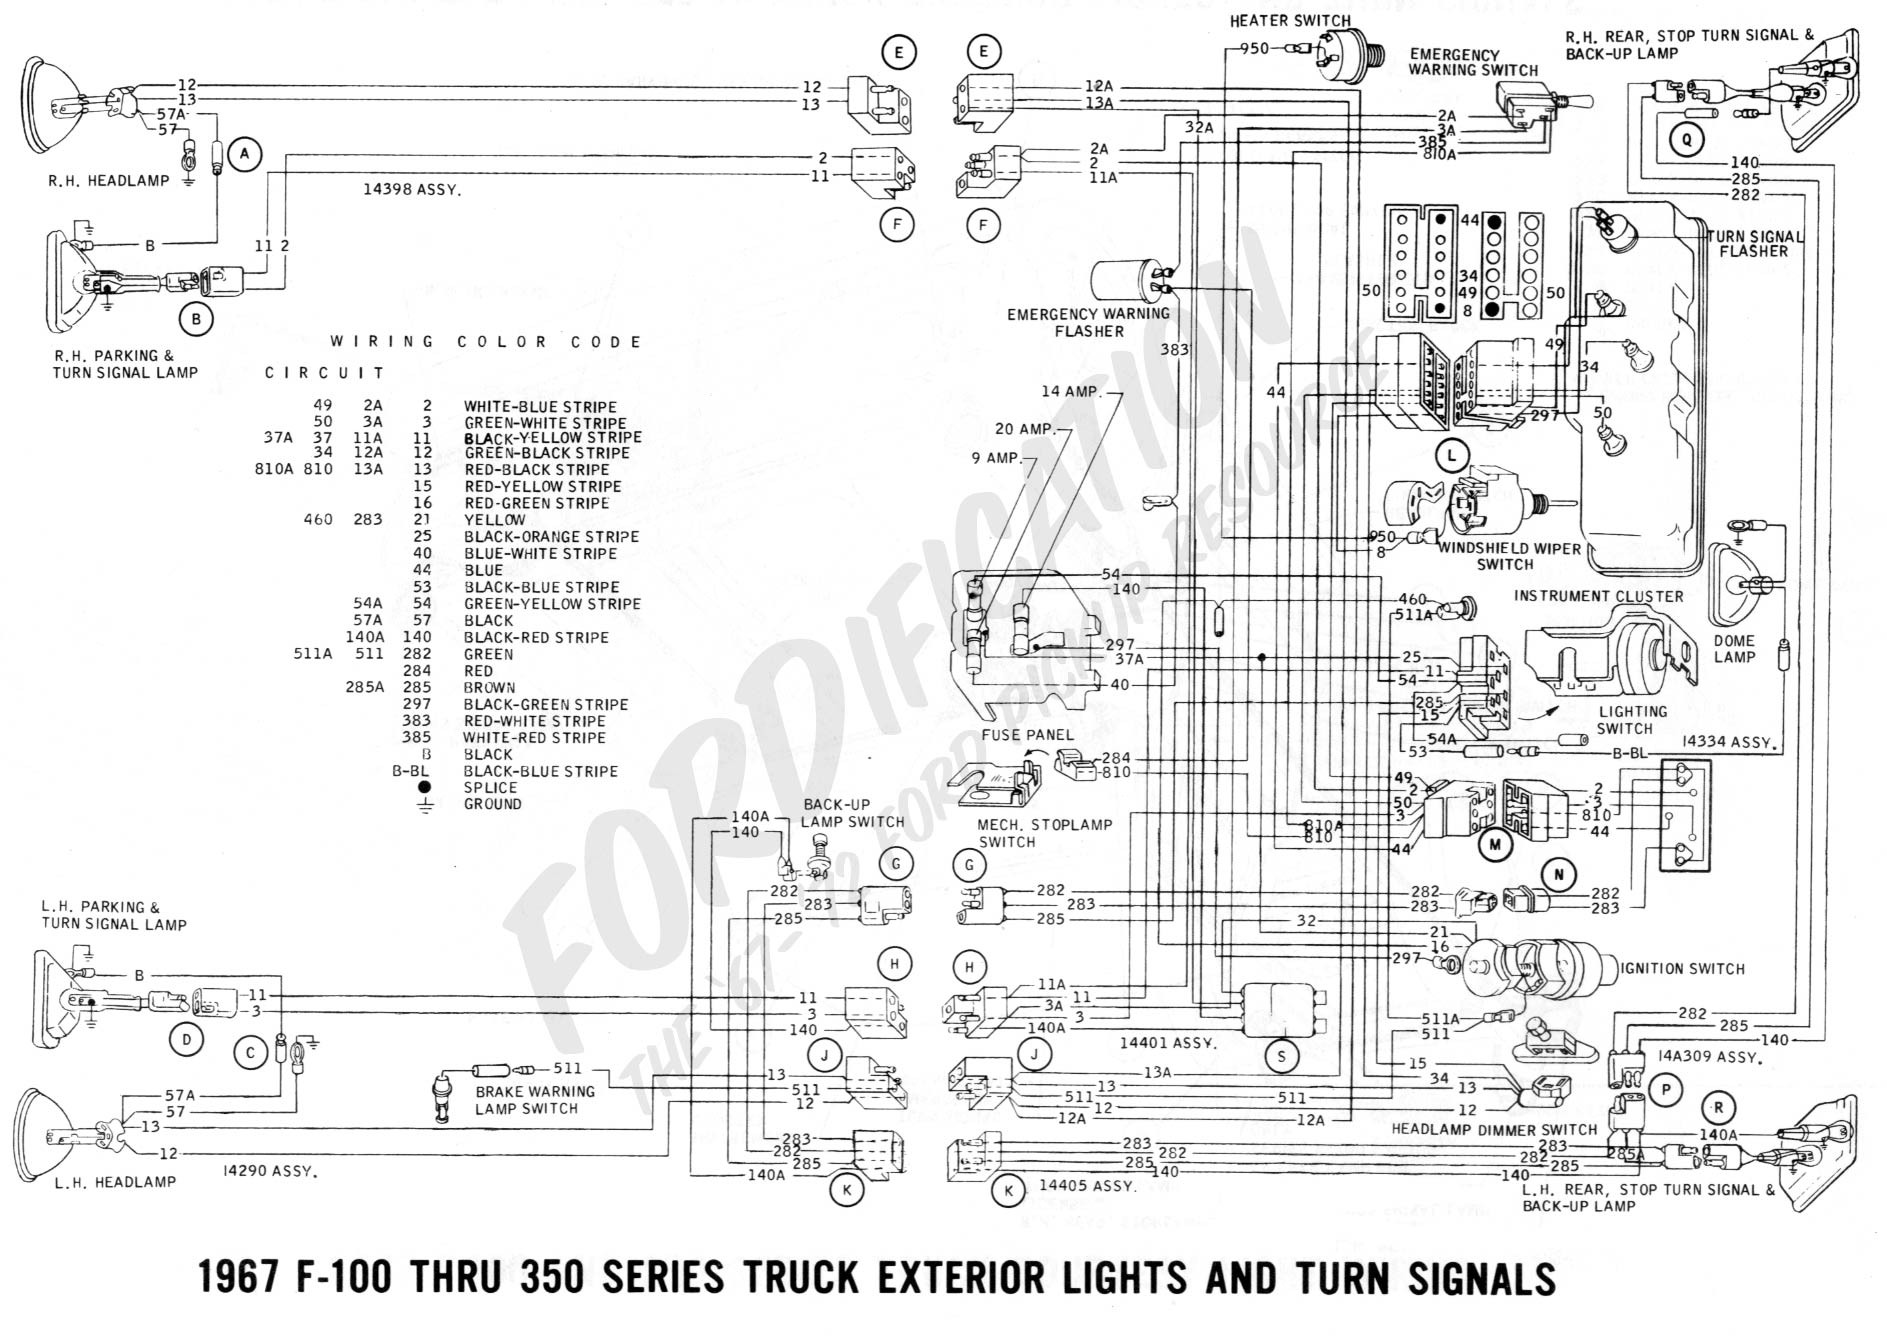 [SCHEMATICS_4LK]  1997 Ford Thunderbird Wiring Diagram 2004 harley davidson sportster scosche  fdk106 wiring diagram - warm.freeappsforkids.co.uk | 97 Thunderbird Fuse Box |  | Wires